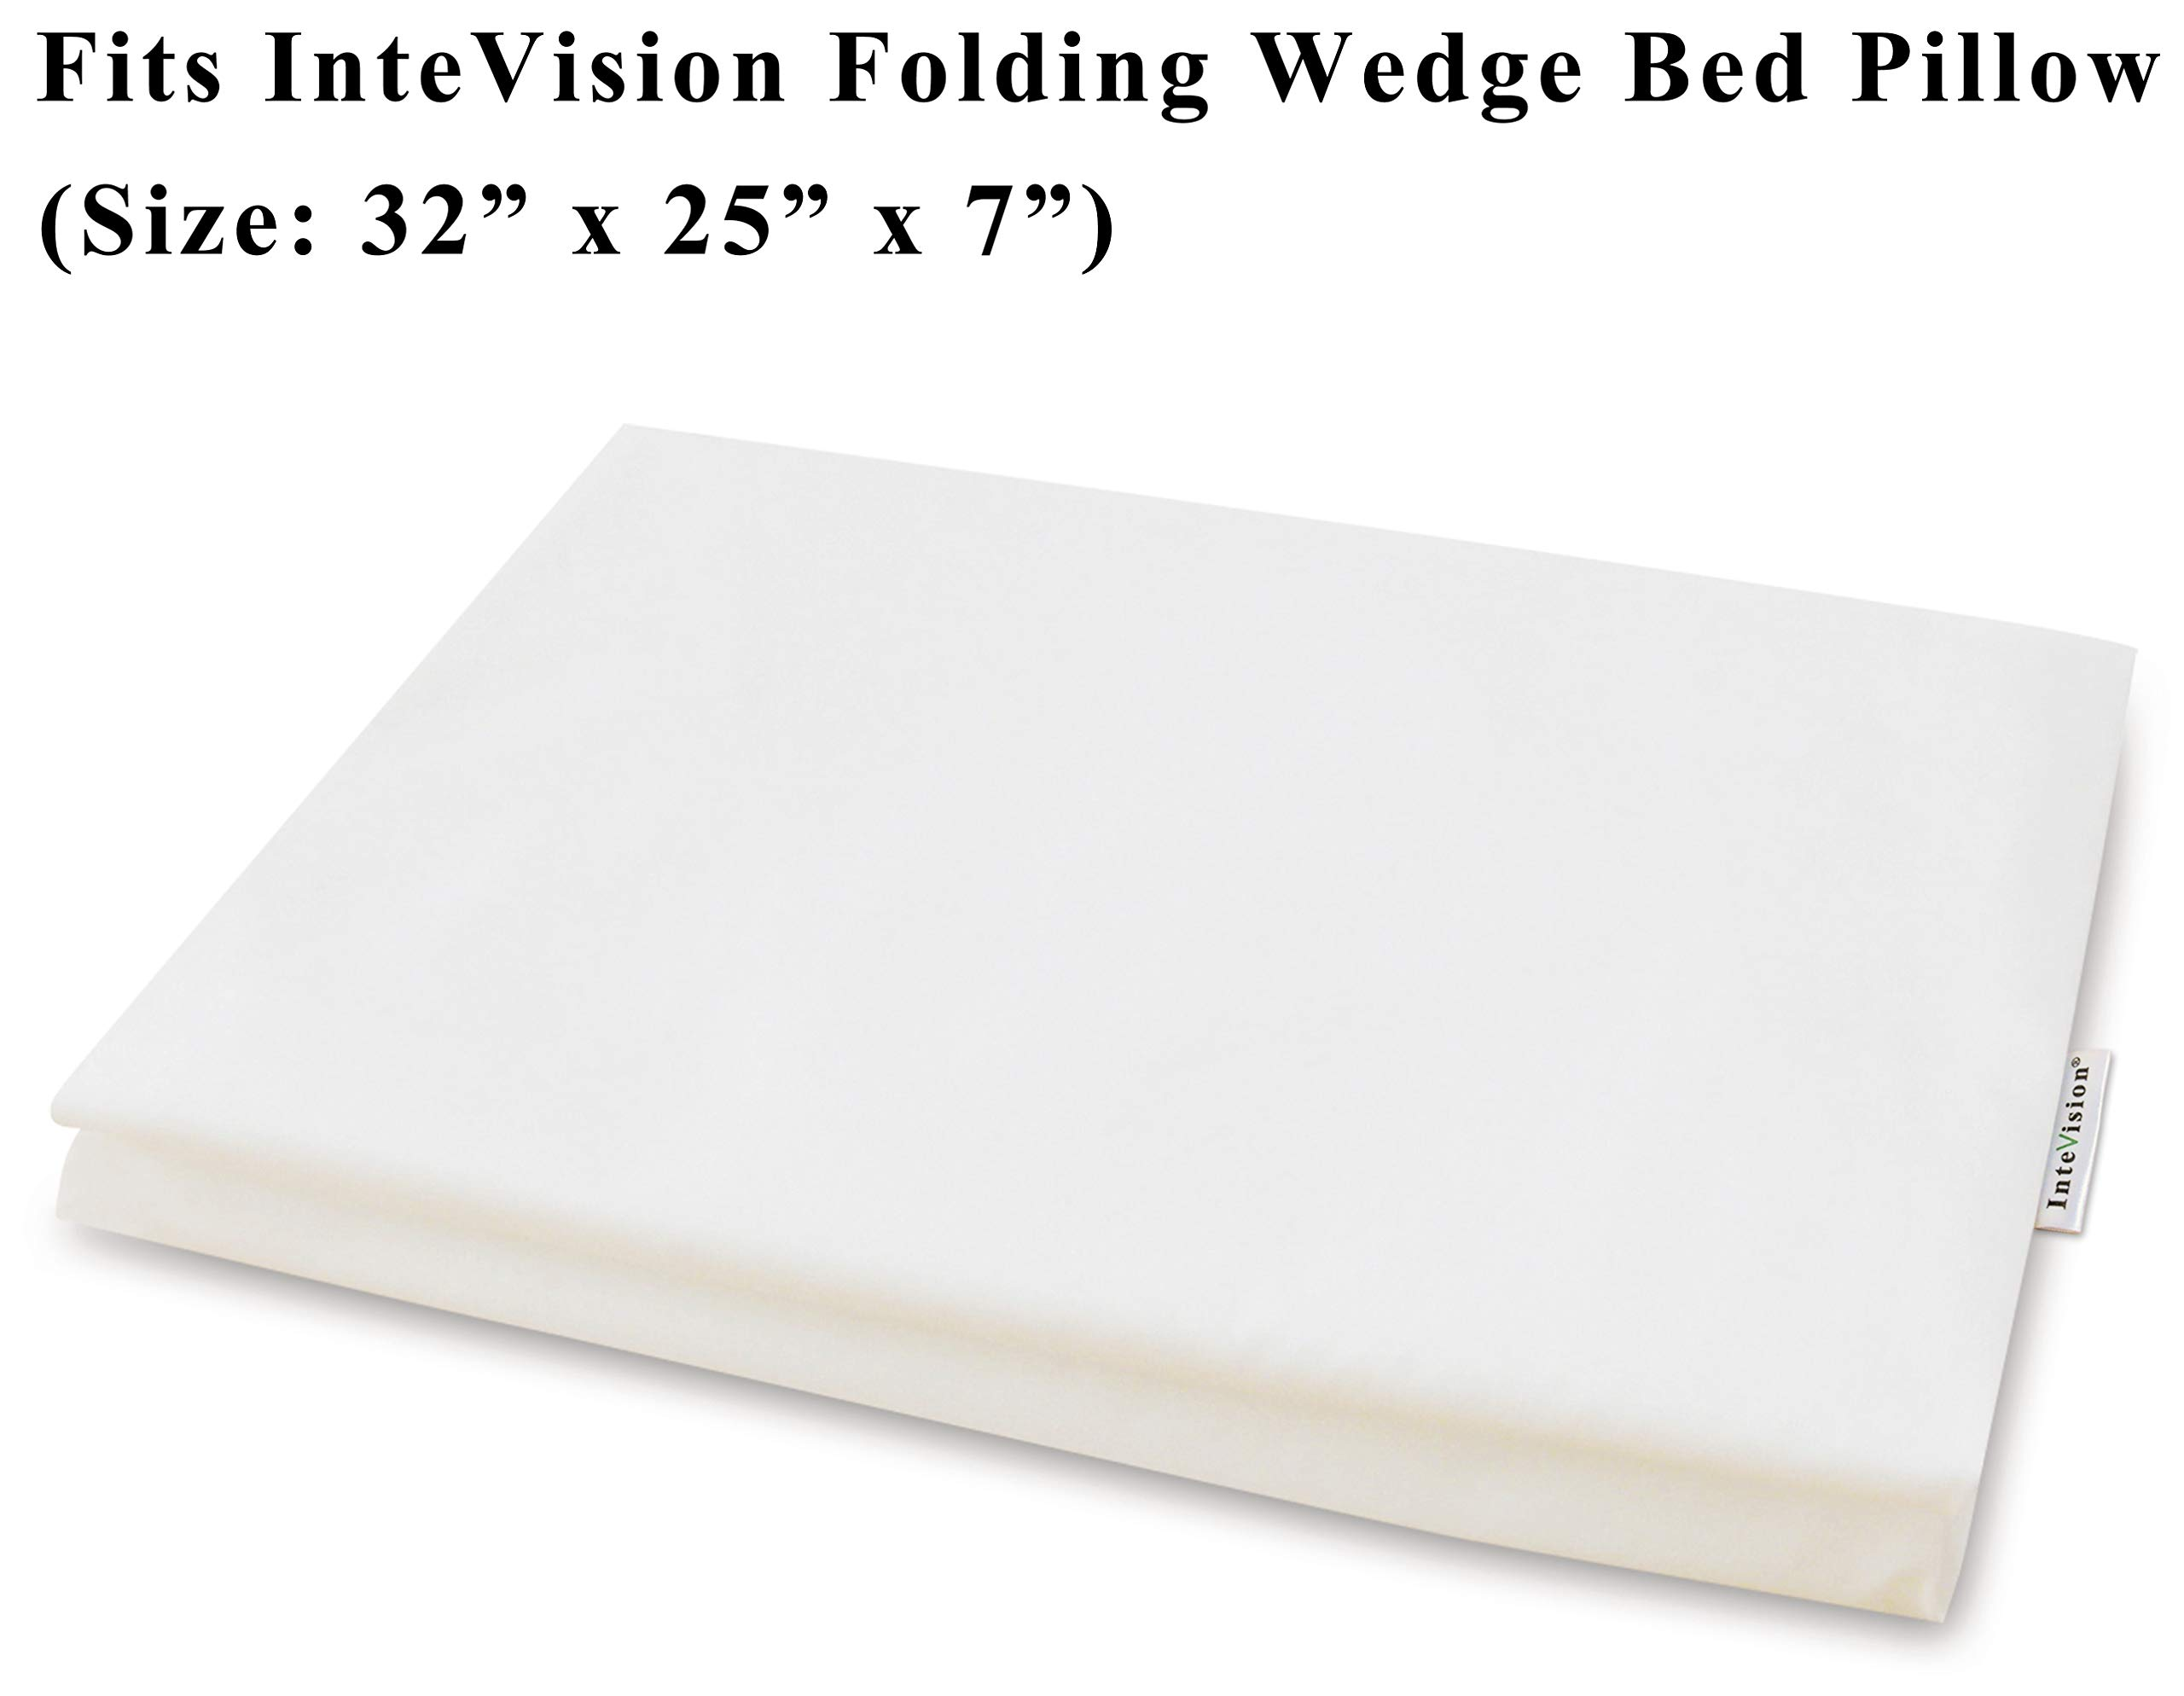 InteVision 400 Thread Count, 100% Egyptian Cotton Pillowcase. Designed to Fit the InteVision Folding Wedge Bed Pillow (32'' x 25'' x 7'') by InteVision